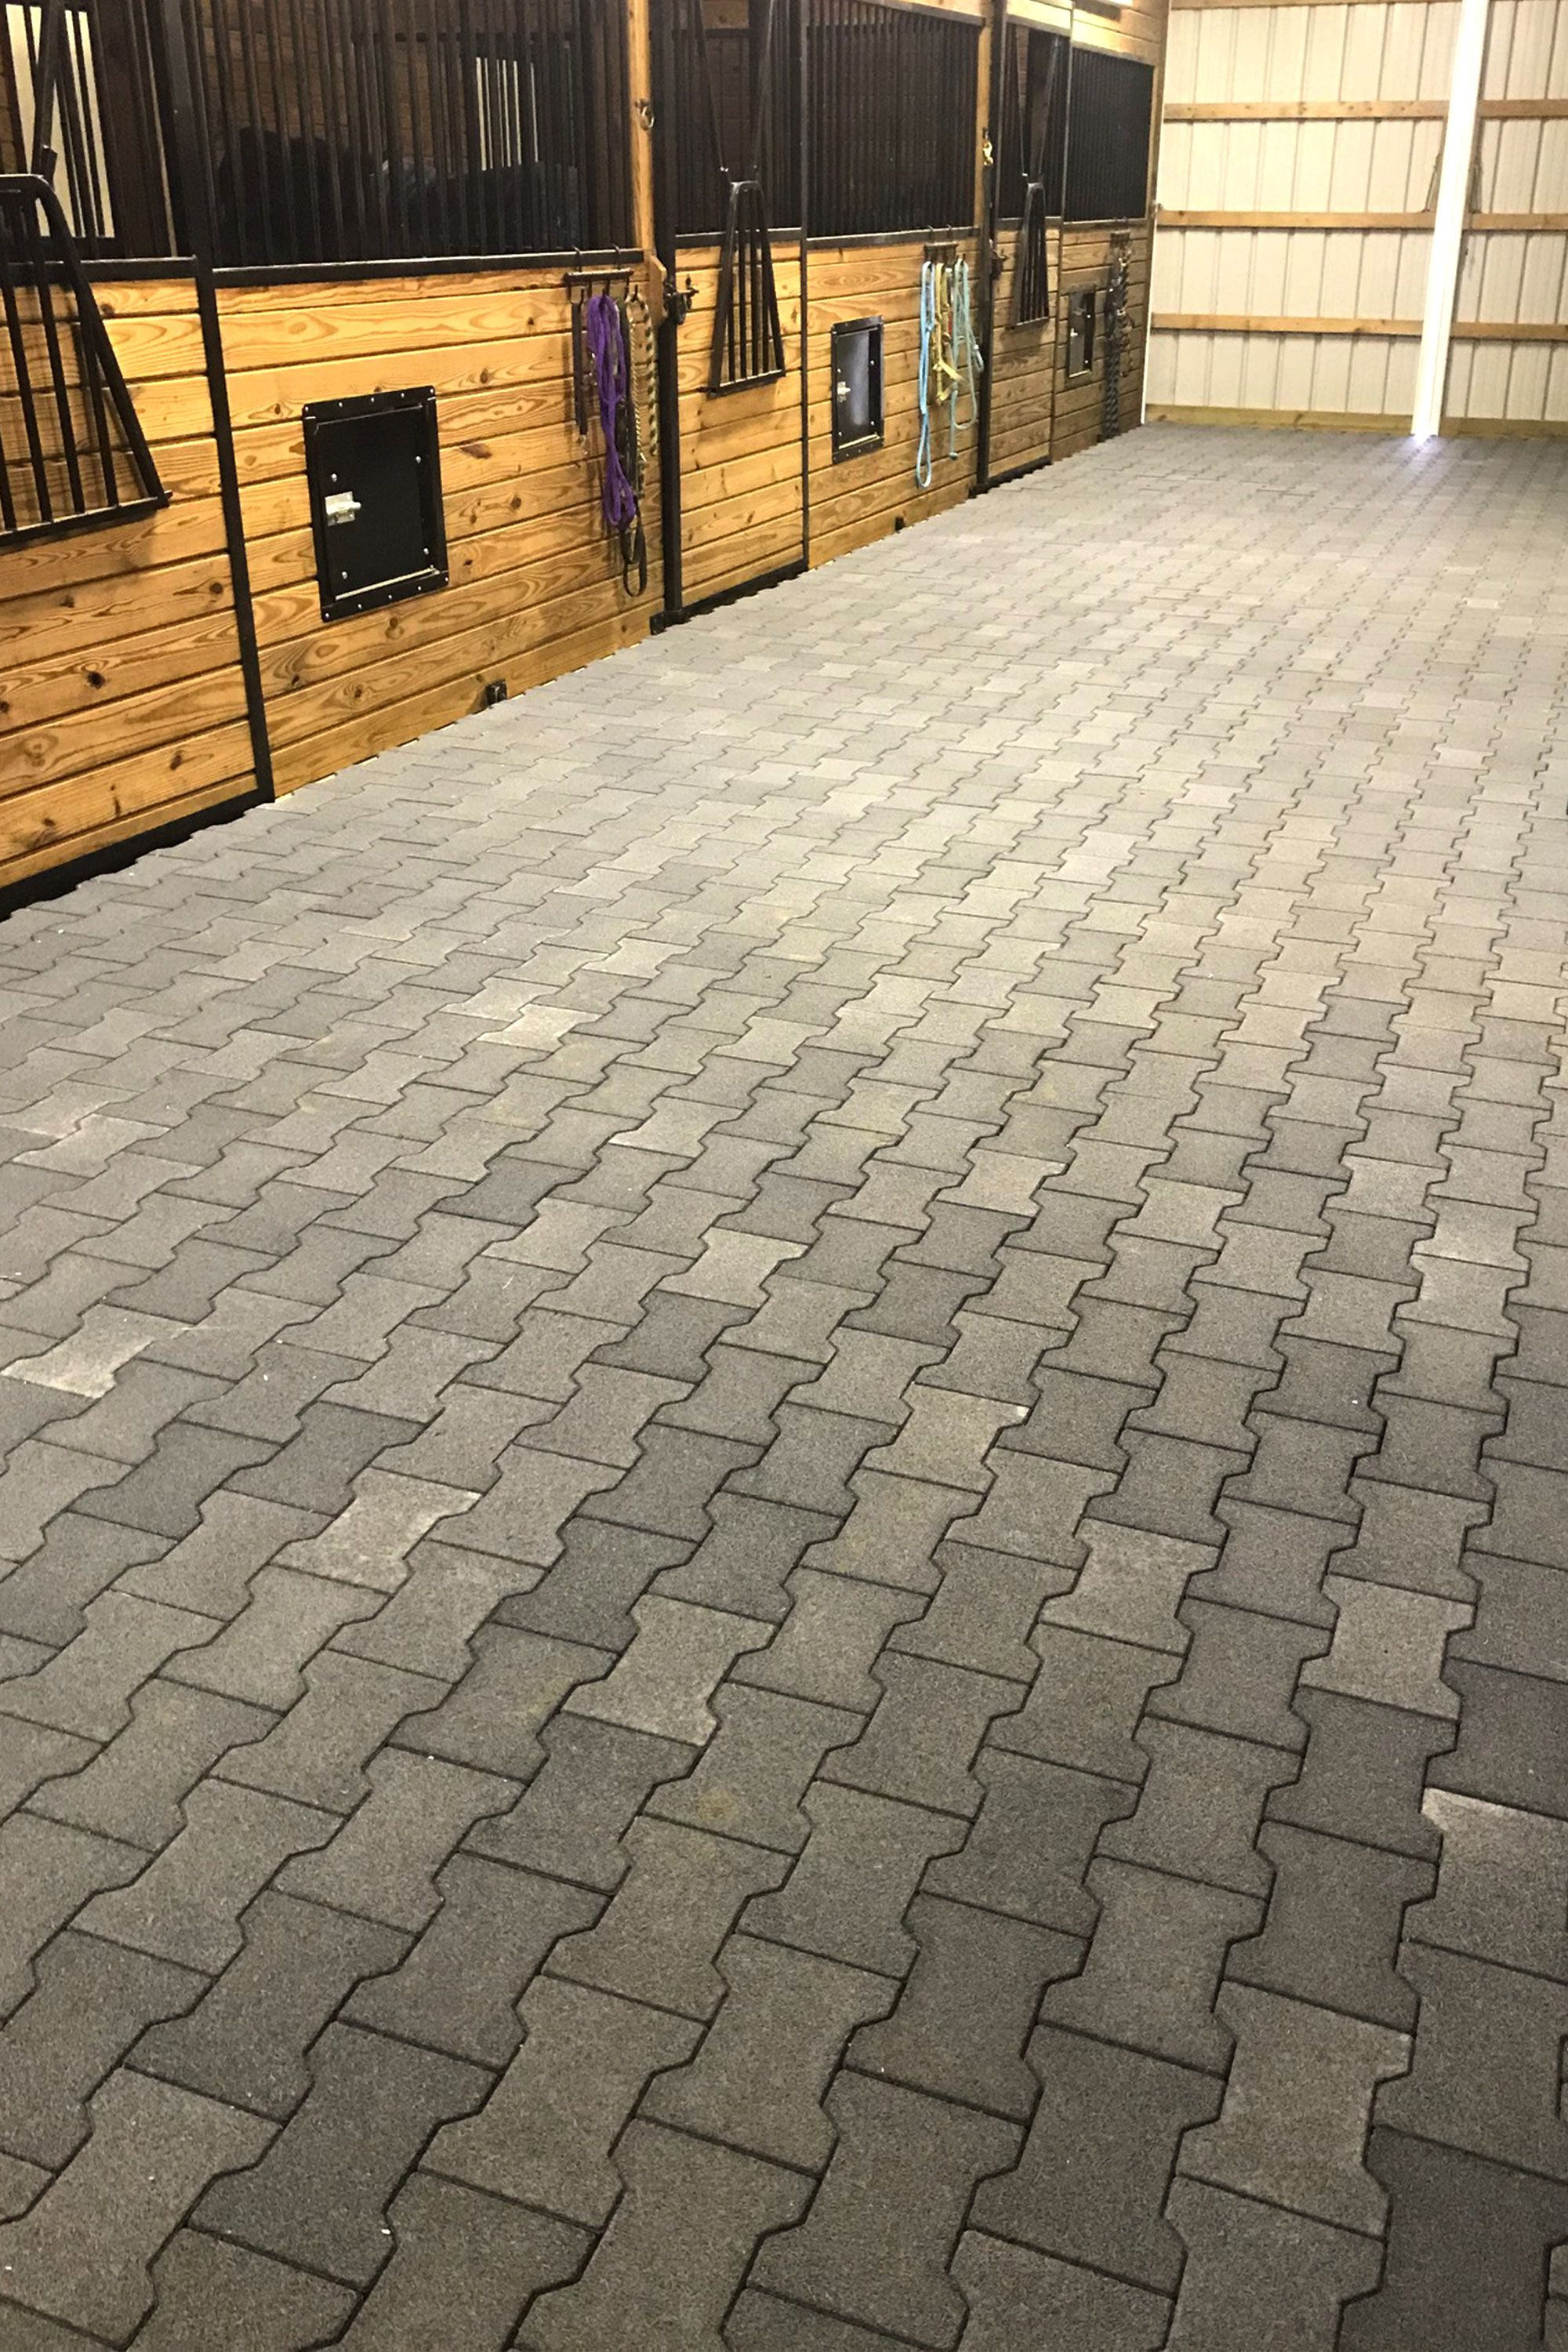 Solid Rubber Pavers Barn Aisle Flooring Barn Aisle Flooring Small Horse Barns Dream Horse Barns